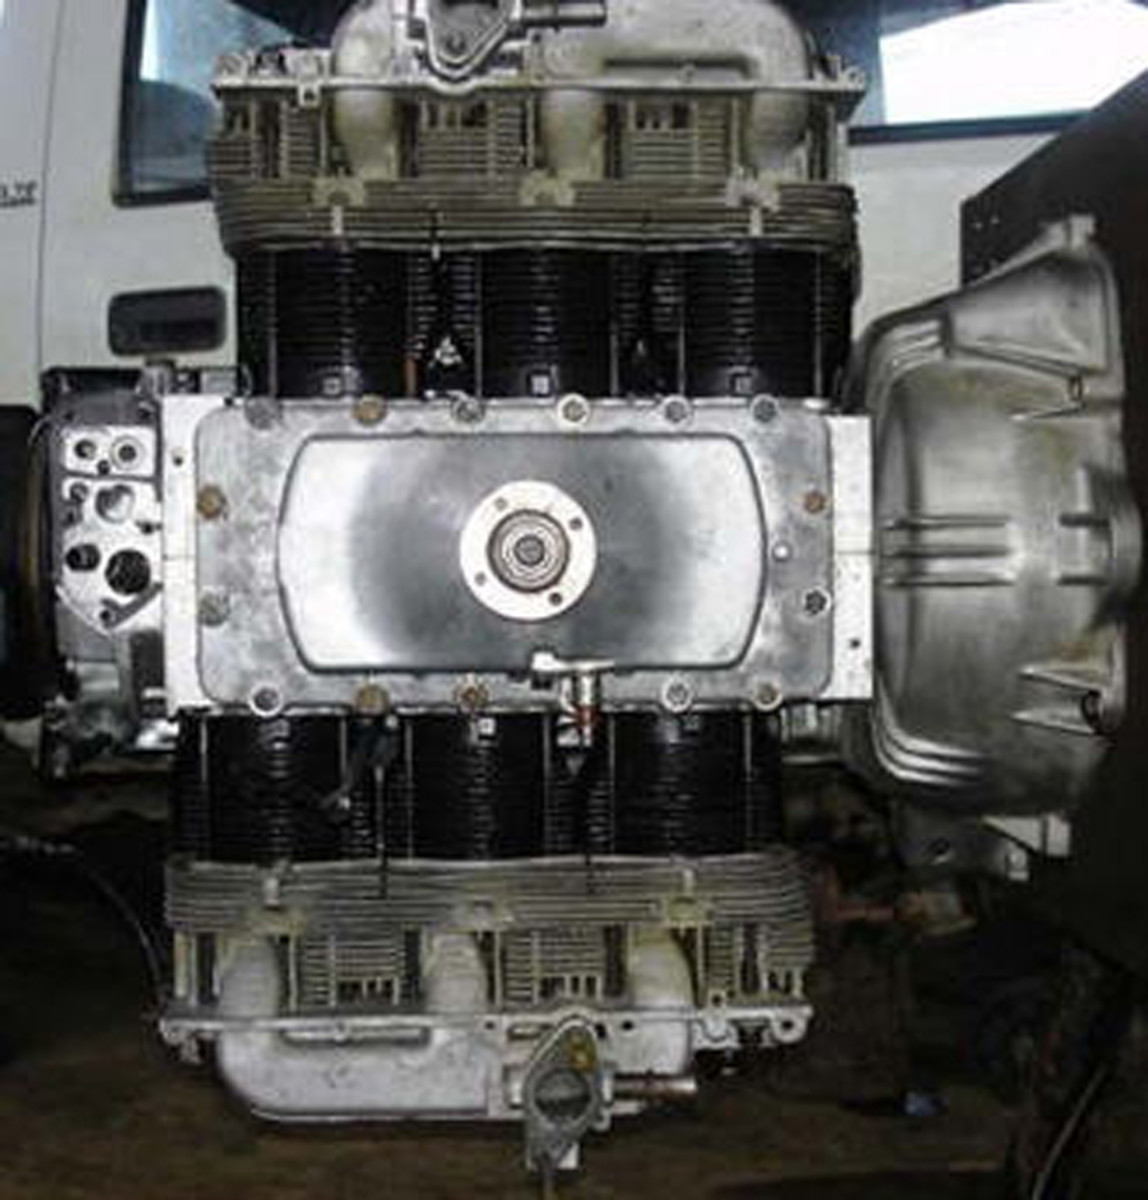 engine without shroud cover